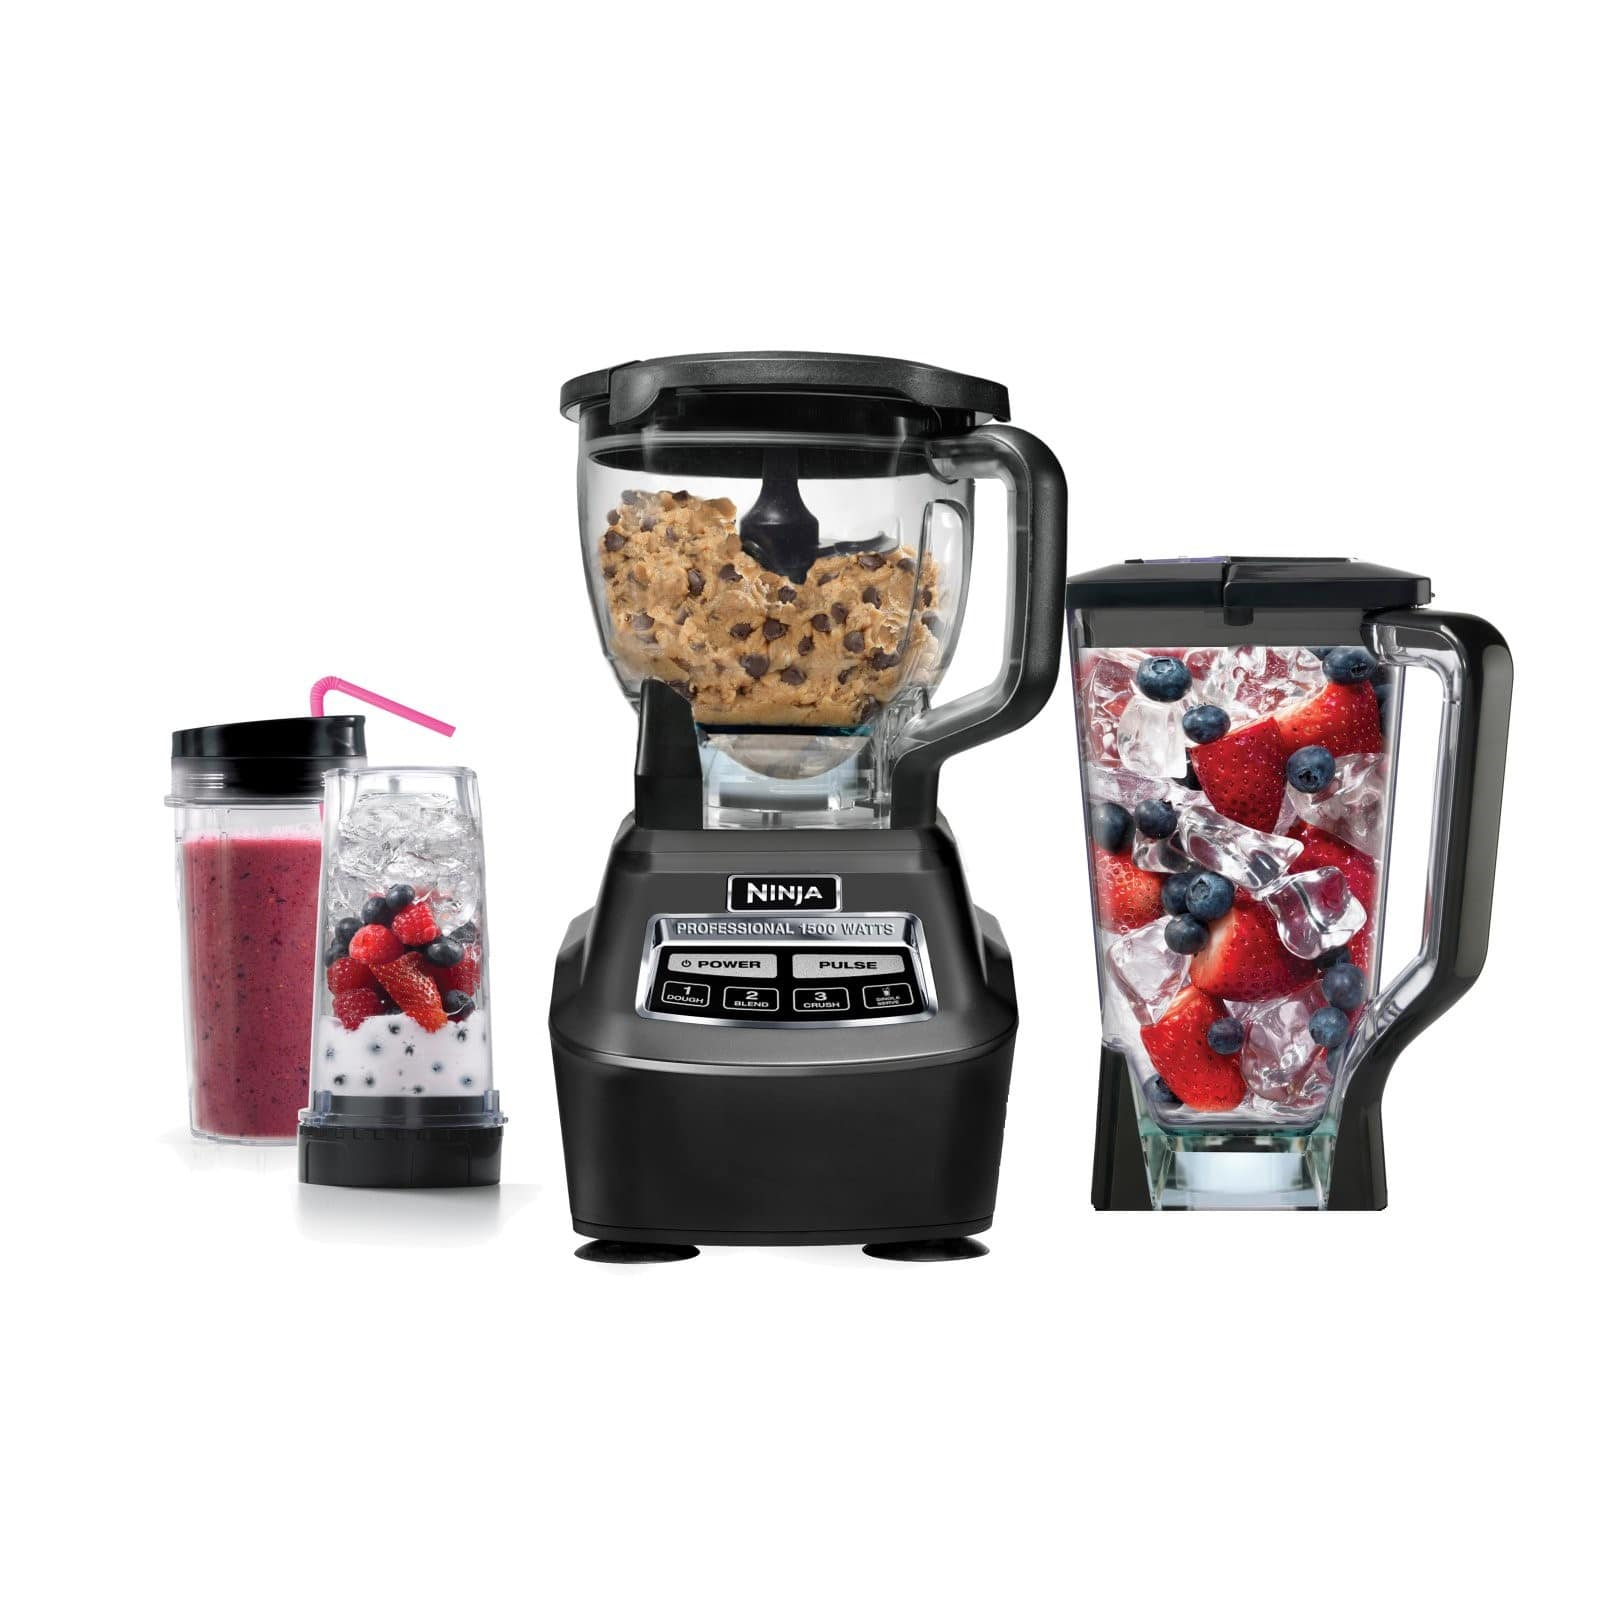 Ninja Mega Kitchen System (Blender, Processor, Nutri Ninja Cups) BL770 $99.99